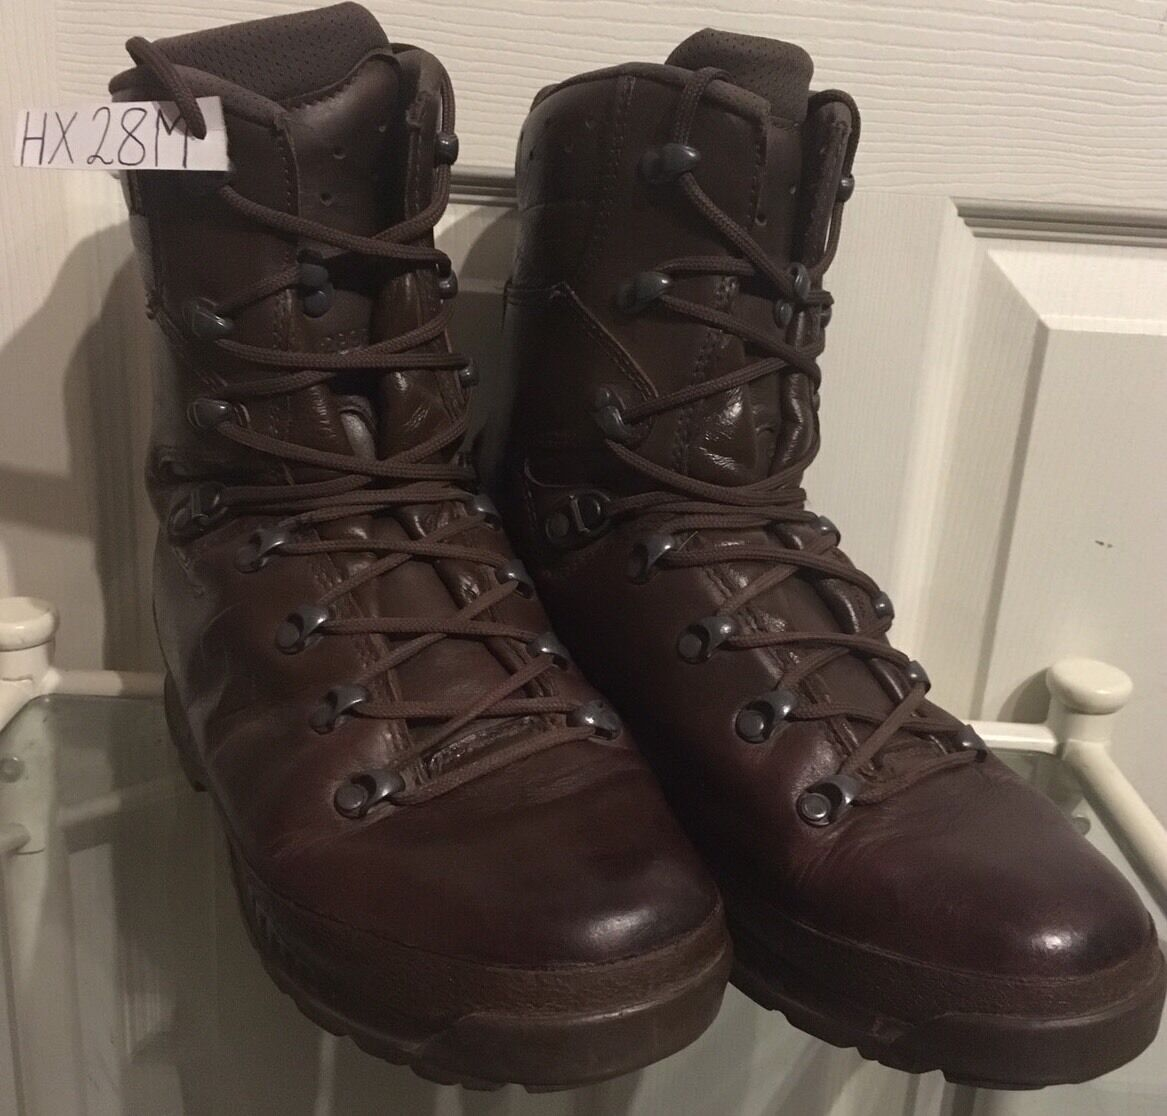 Haix Brown MTP Gore-Tex Waterproof Army Issue Wet Weather Hiking Boots 8M HX28M